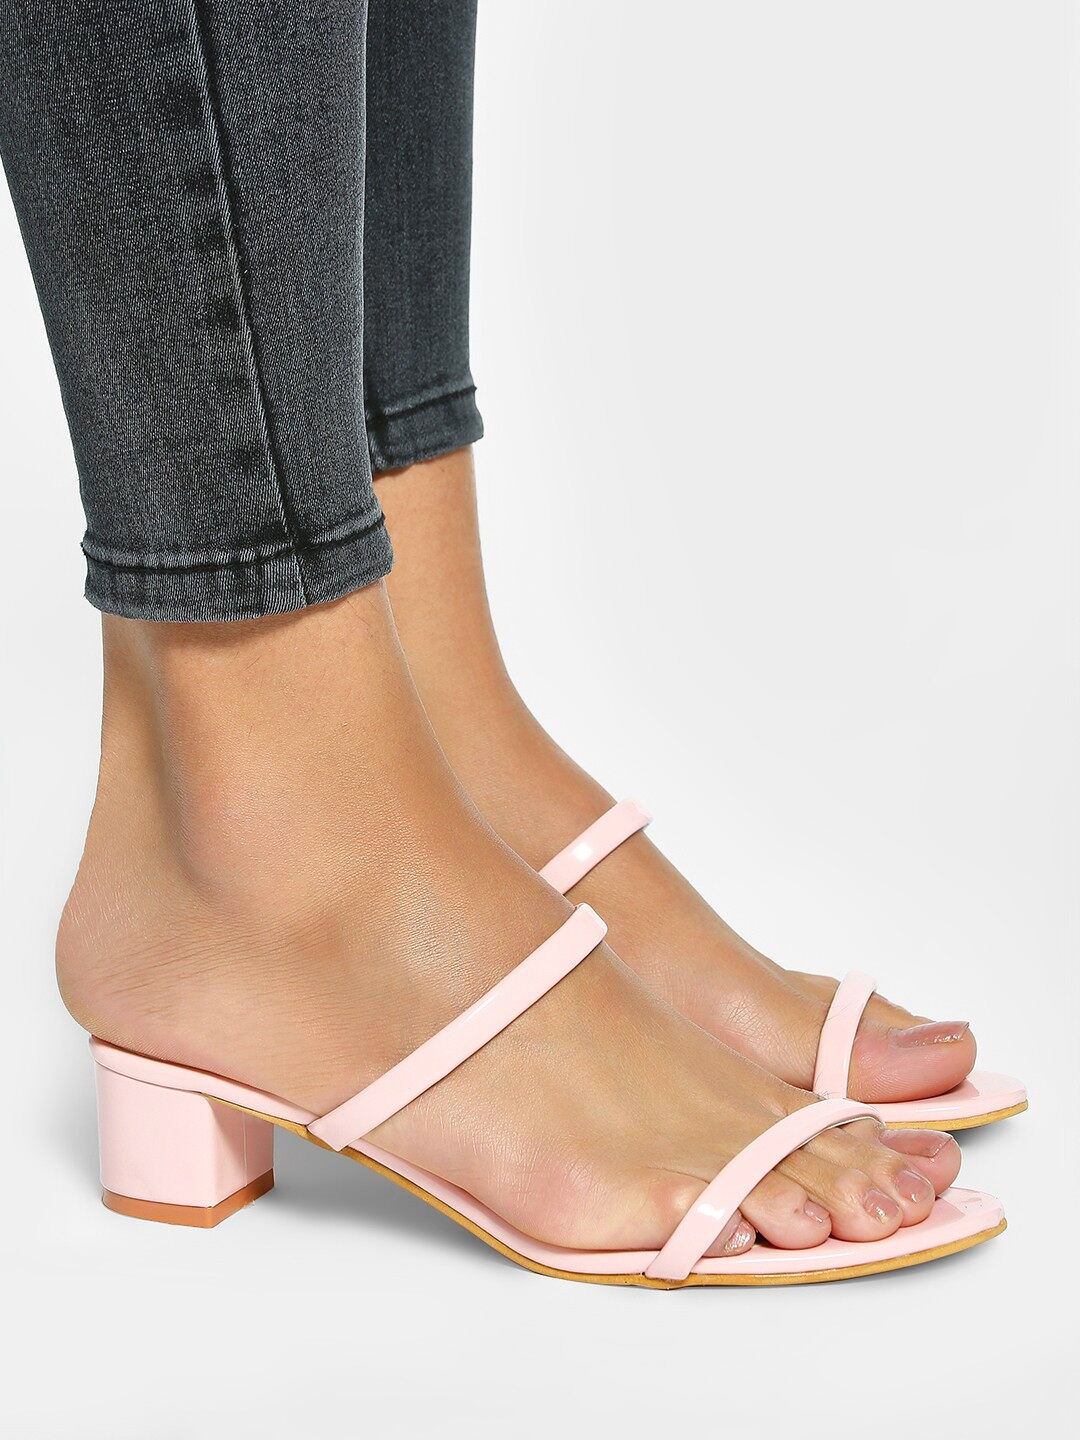 My Foot Couture Pink Low-Rise Heeled Sandals 1